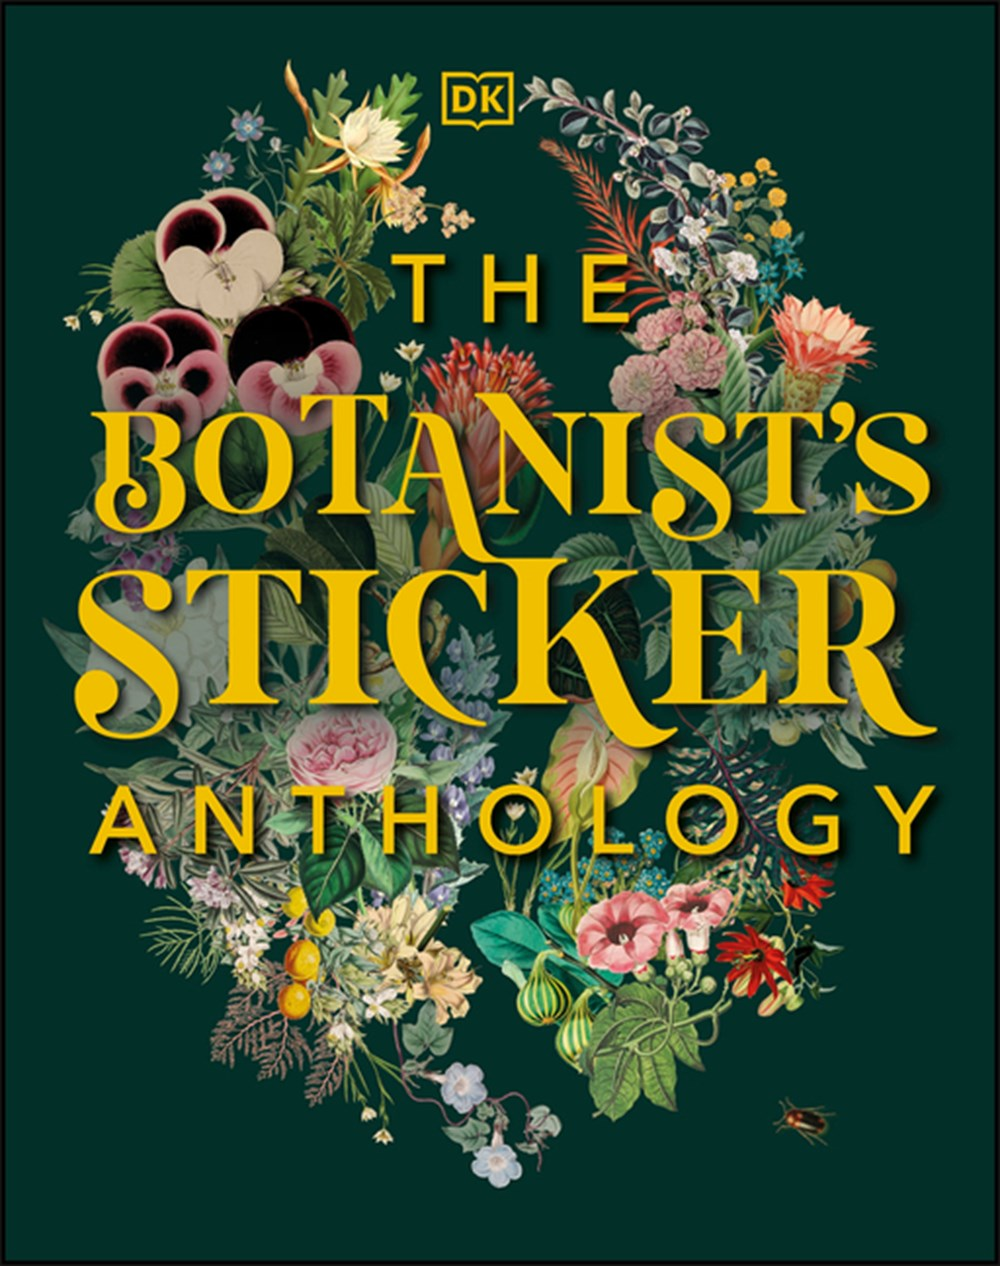 Botanist's Sticker Anthology